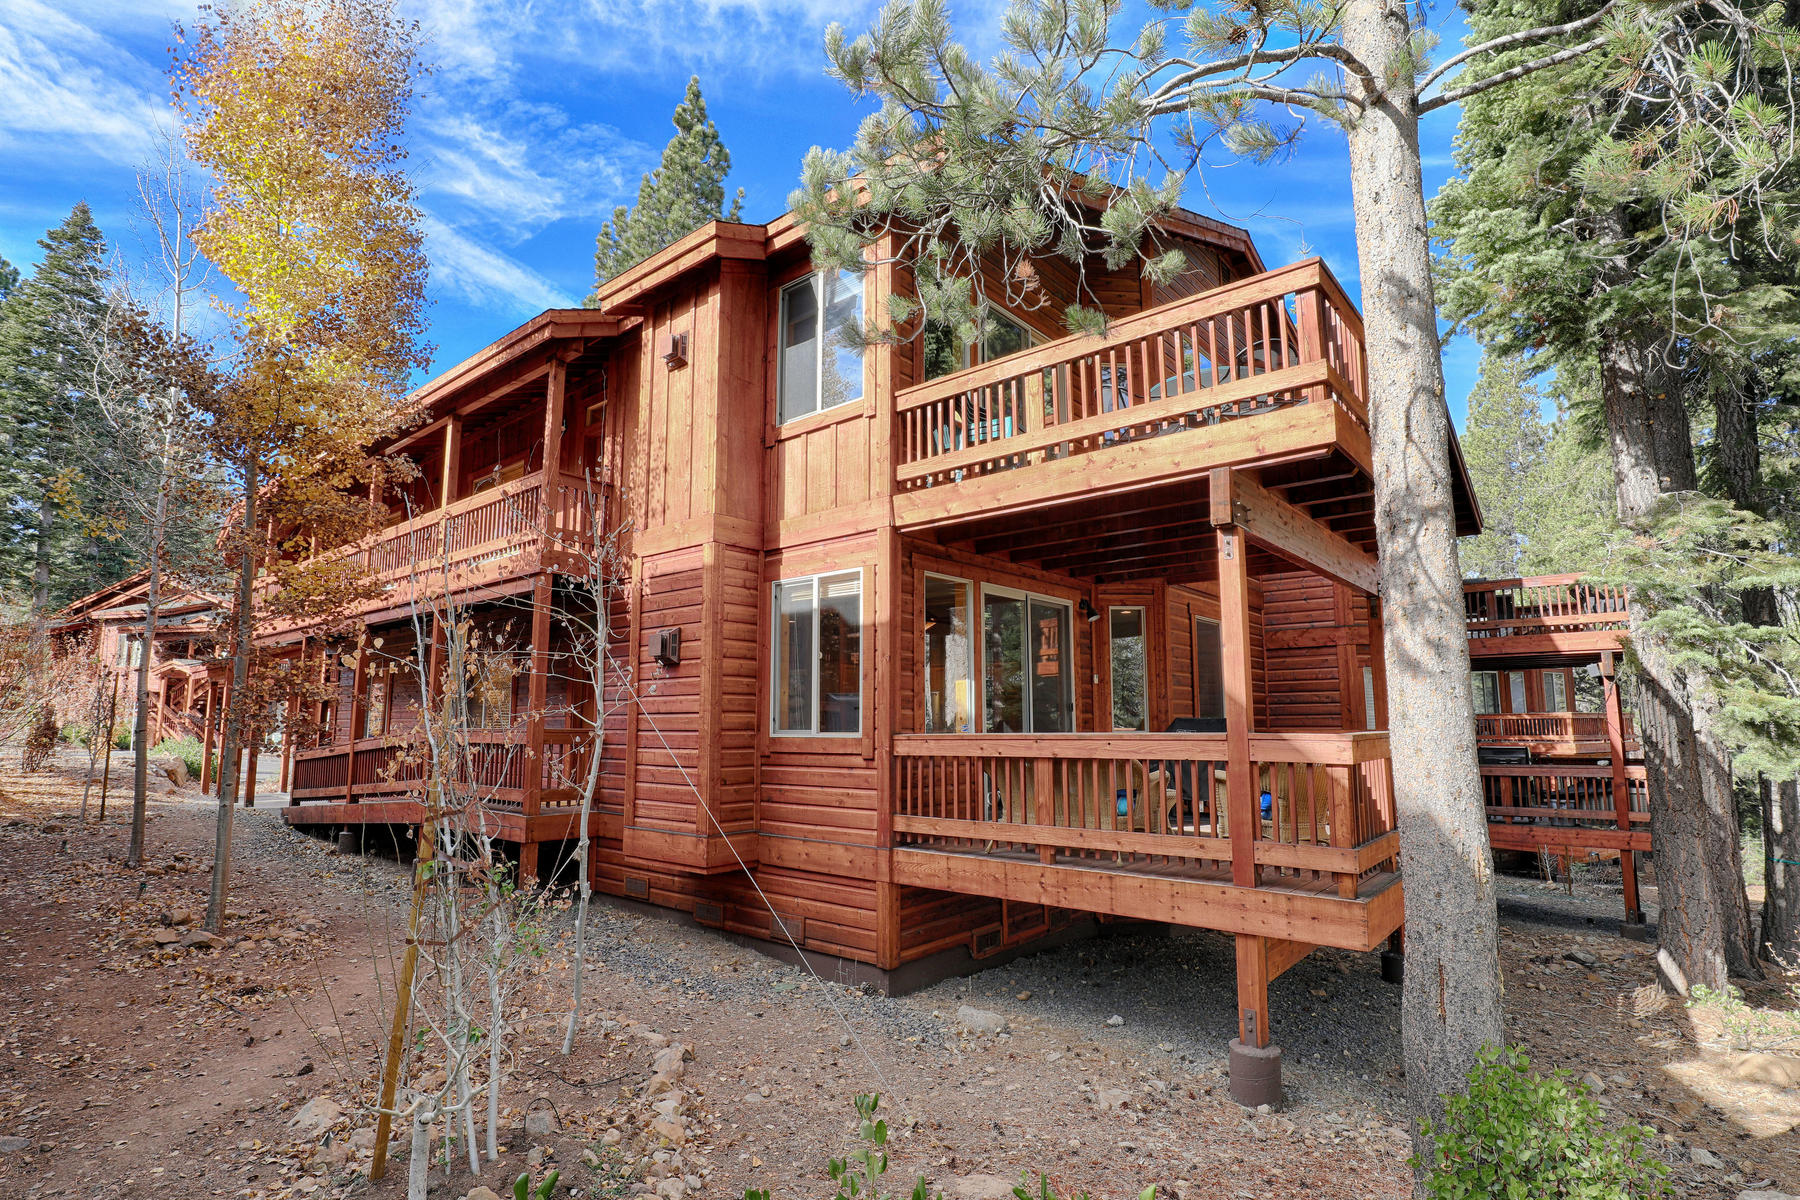 Additional photo for property listing at 12719 Hidden Circle #2, Truckee, Ca 96161 12719 Hidden Circle #2 Truckee, California 96161 United States